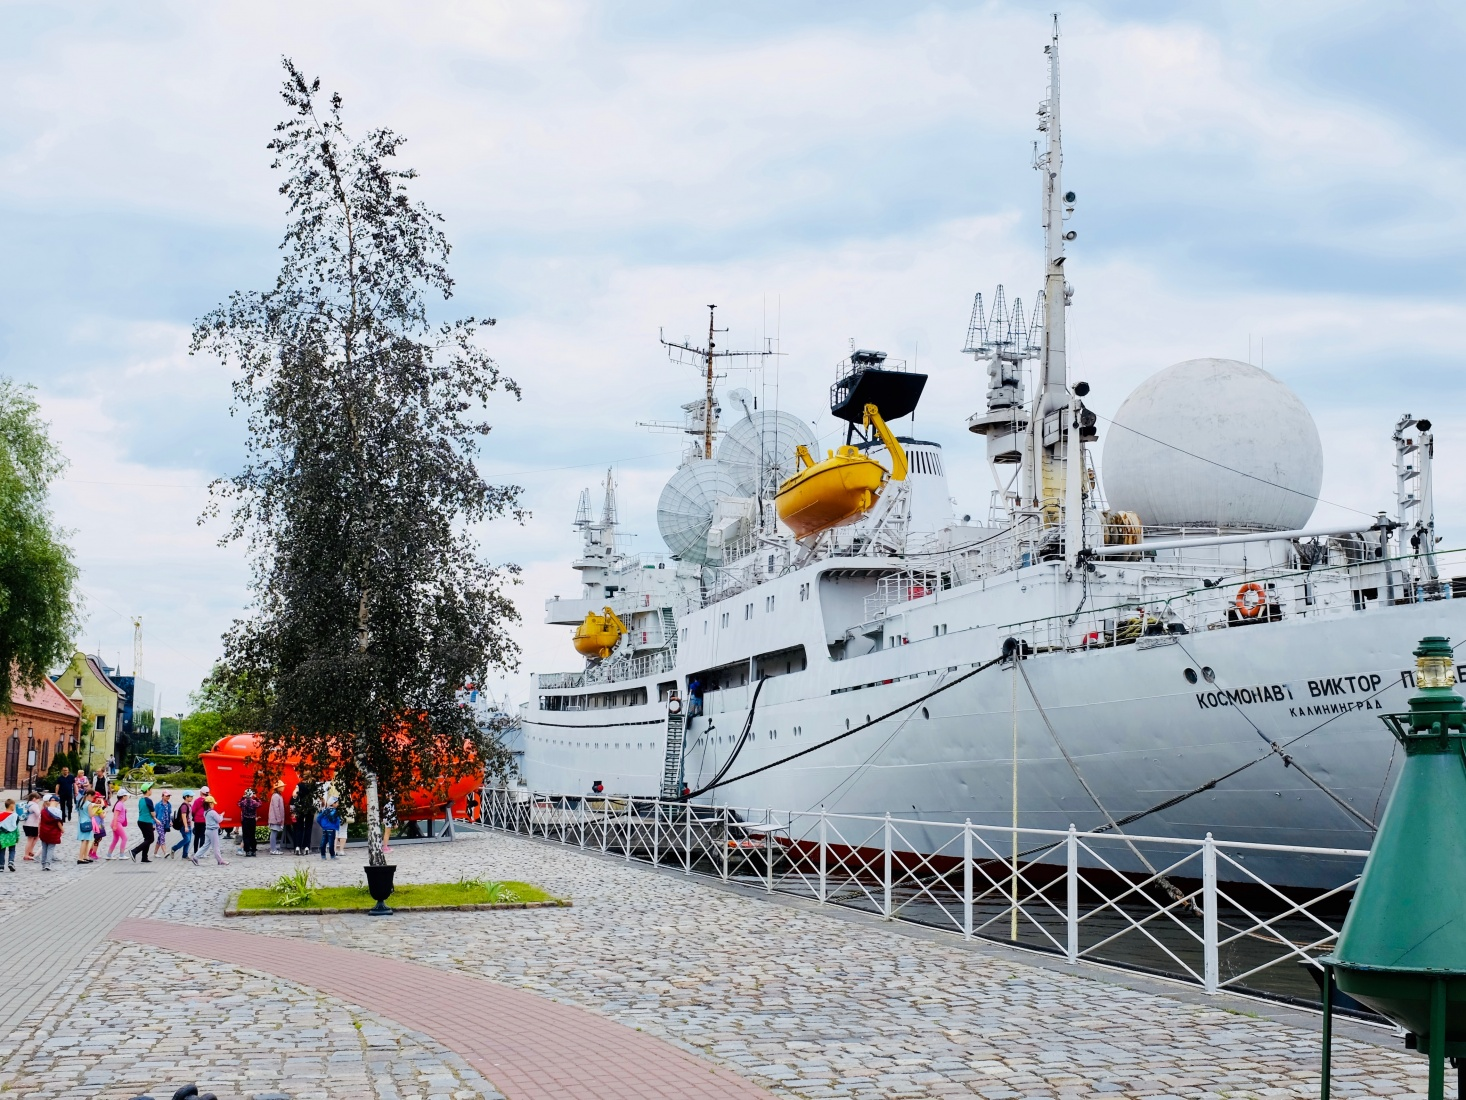 Museum of the World Ocean ship in Kaliningrad, Russia, where tourists can explore old Russian research boats.